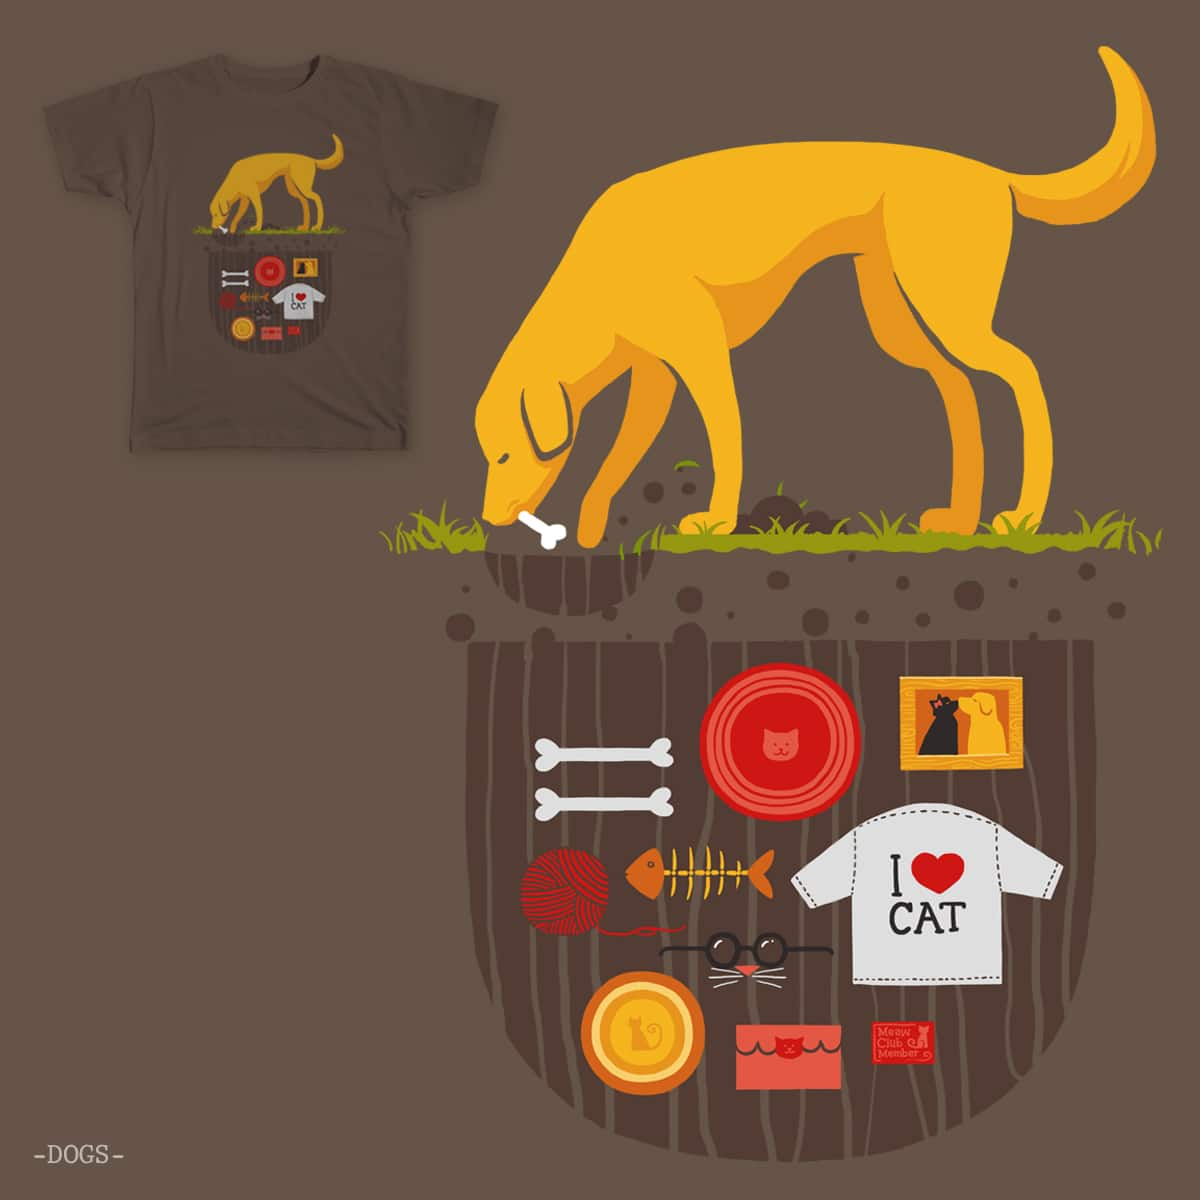 every dog have a secret by ronin84 and hadynoody on Threadless